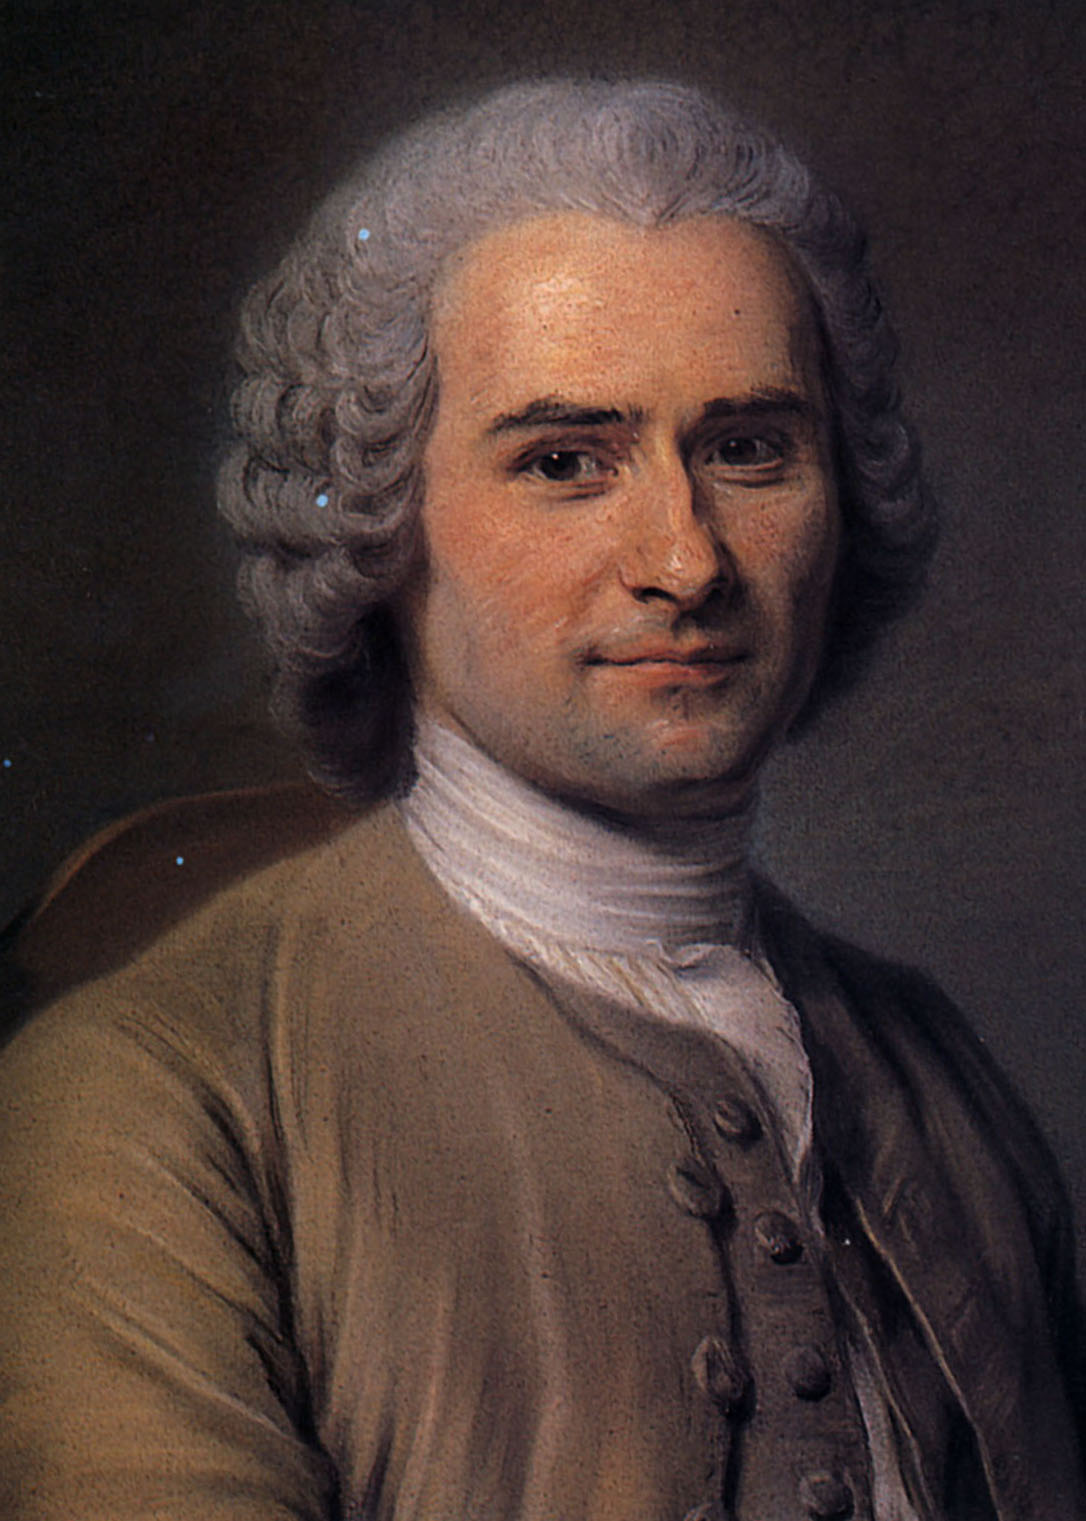 rousseau guys The social contract, originally published as on the social contract or, principles of political rights (french: du contrat social ou principes du droit politique) by jean-jacques rousseau, is a 1762 book in which rousseau theorized about the best way to establish a political community in the face of the problems of commercial society.